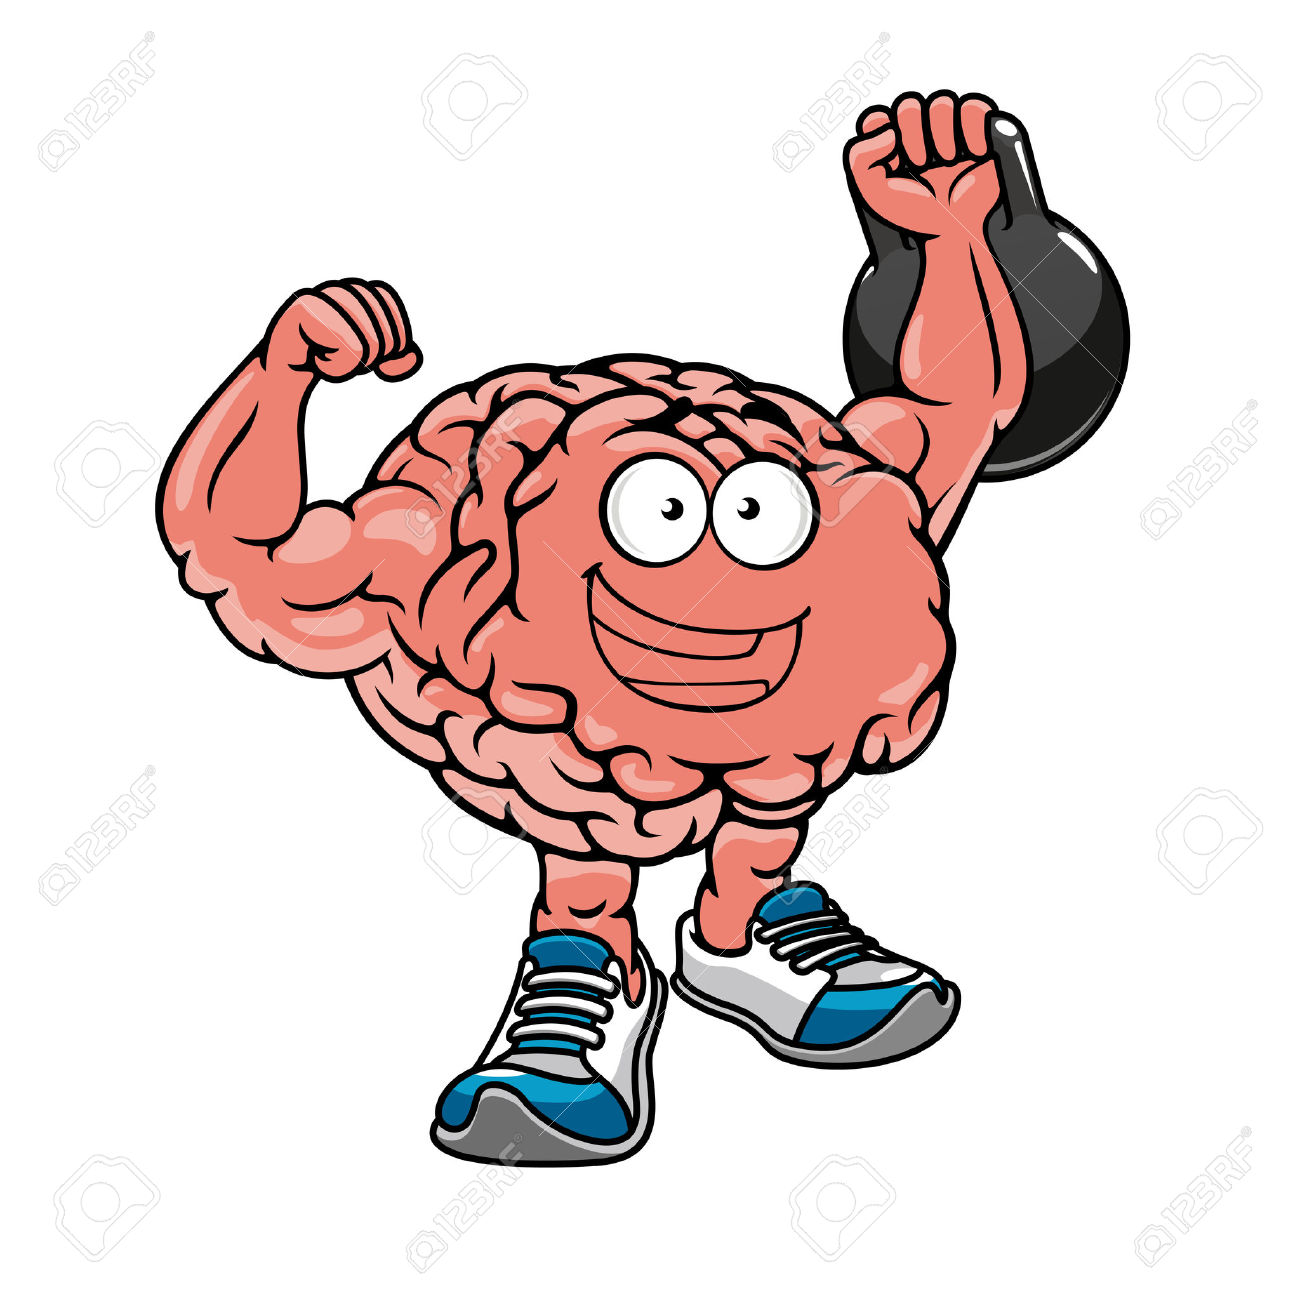 1300x1300 Brain Lifting Weights Clipart Amp Brain Lifting Weights Clip Art